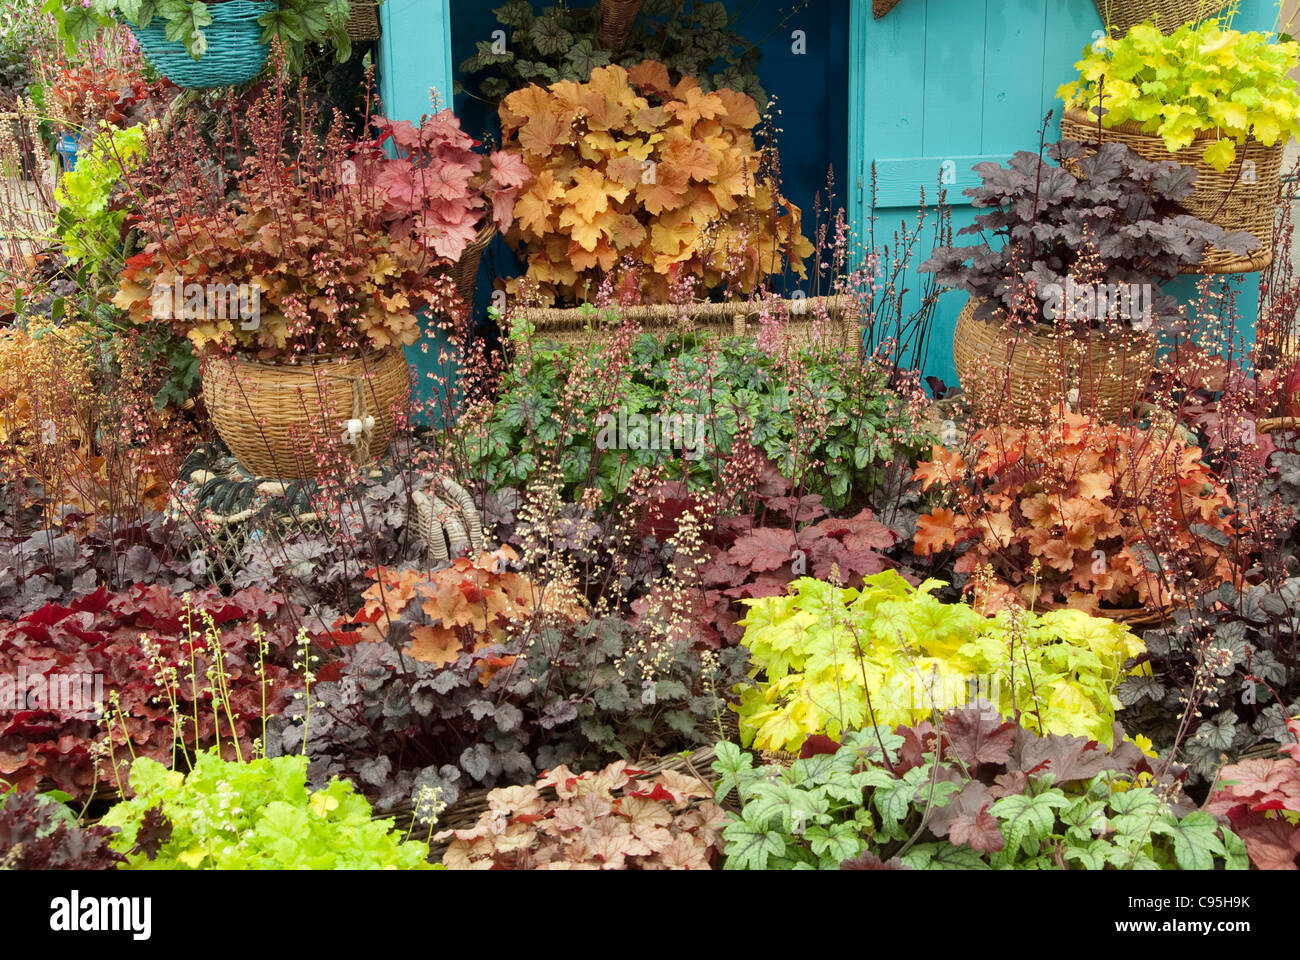 Container Garden perennial plants Heuchera mixture foliage & flowering with many kinds of cultivars & varieties shade garden